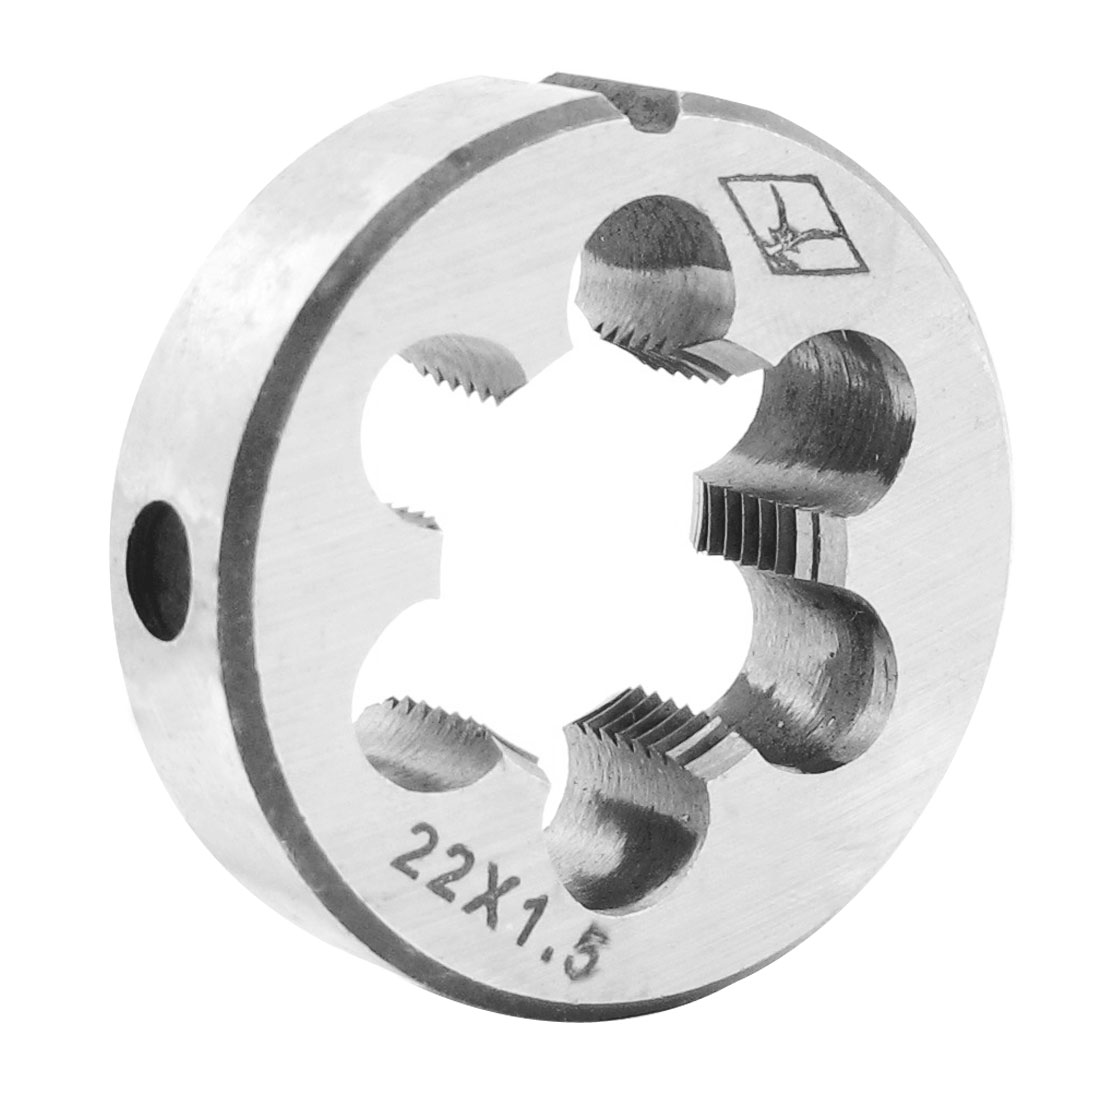 HSS M22 x 1.5 Thread Metric Split Round Adjustable Die